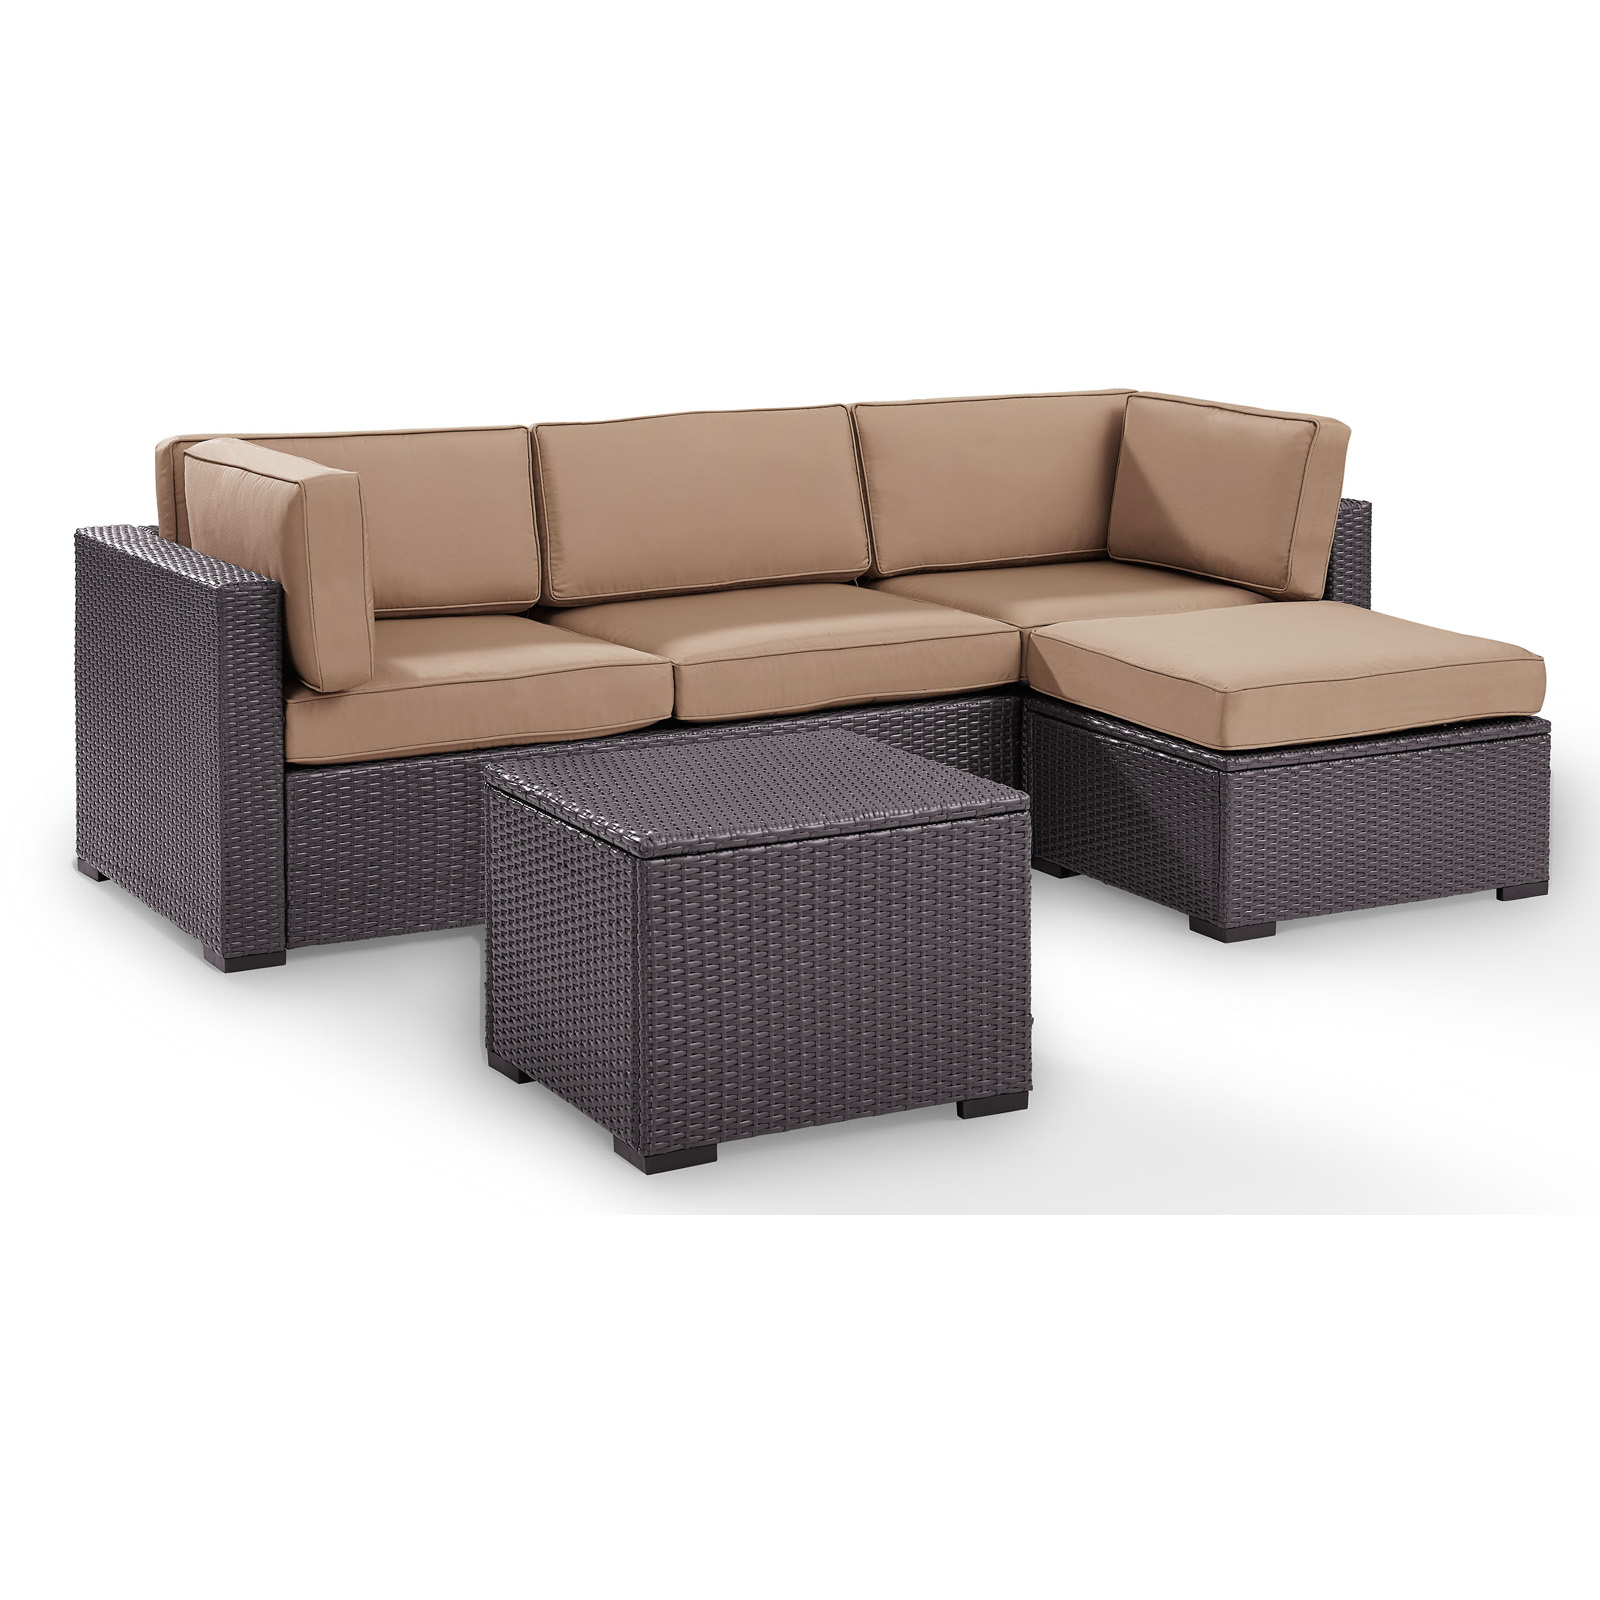 4 Piece Wicker Conversation Set Outdoor Patio Furniture